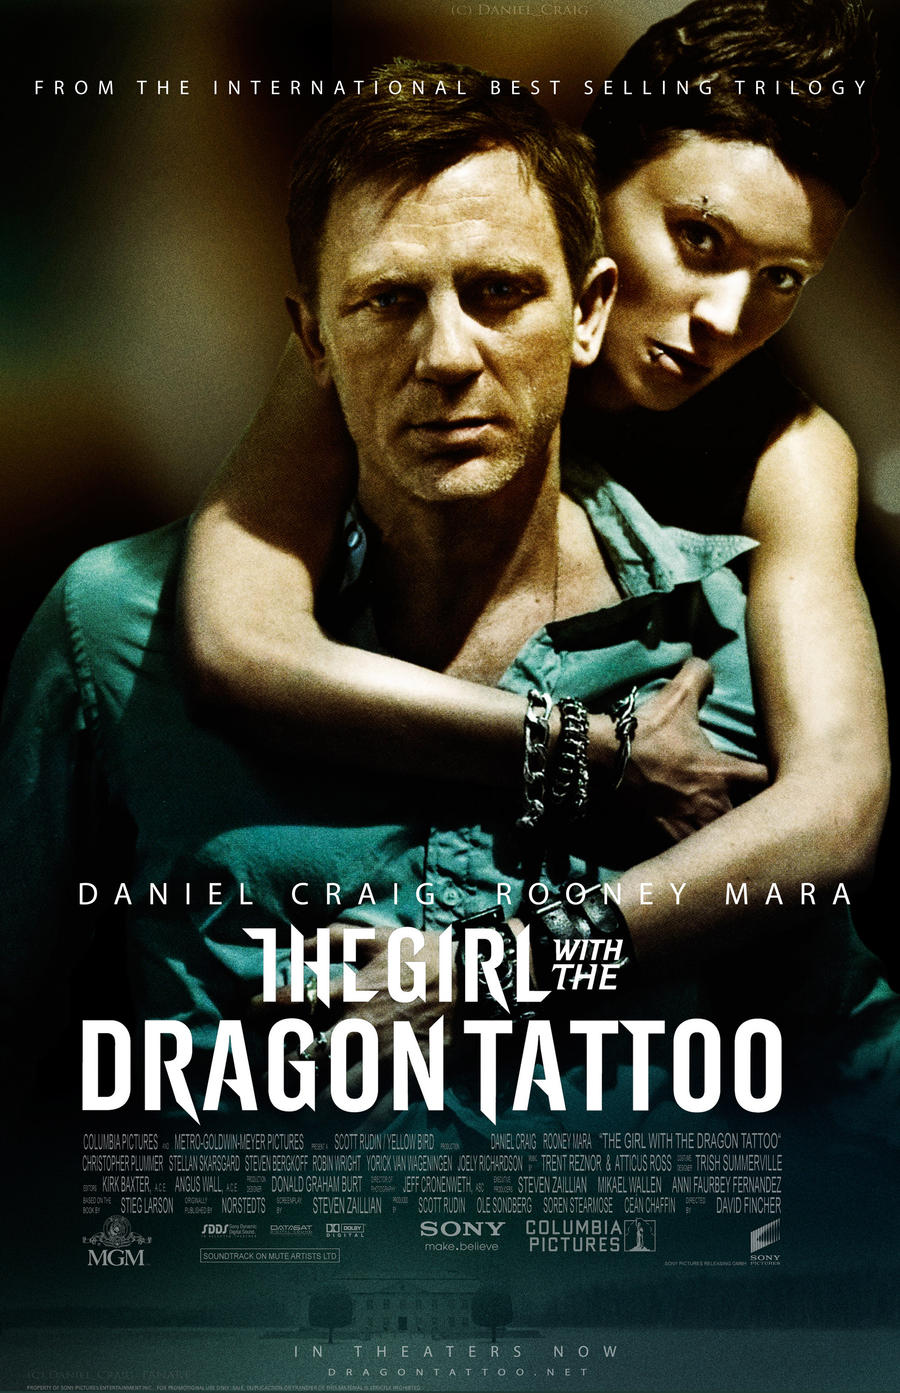 the girl with the dragon tattoo theatrical poster by